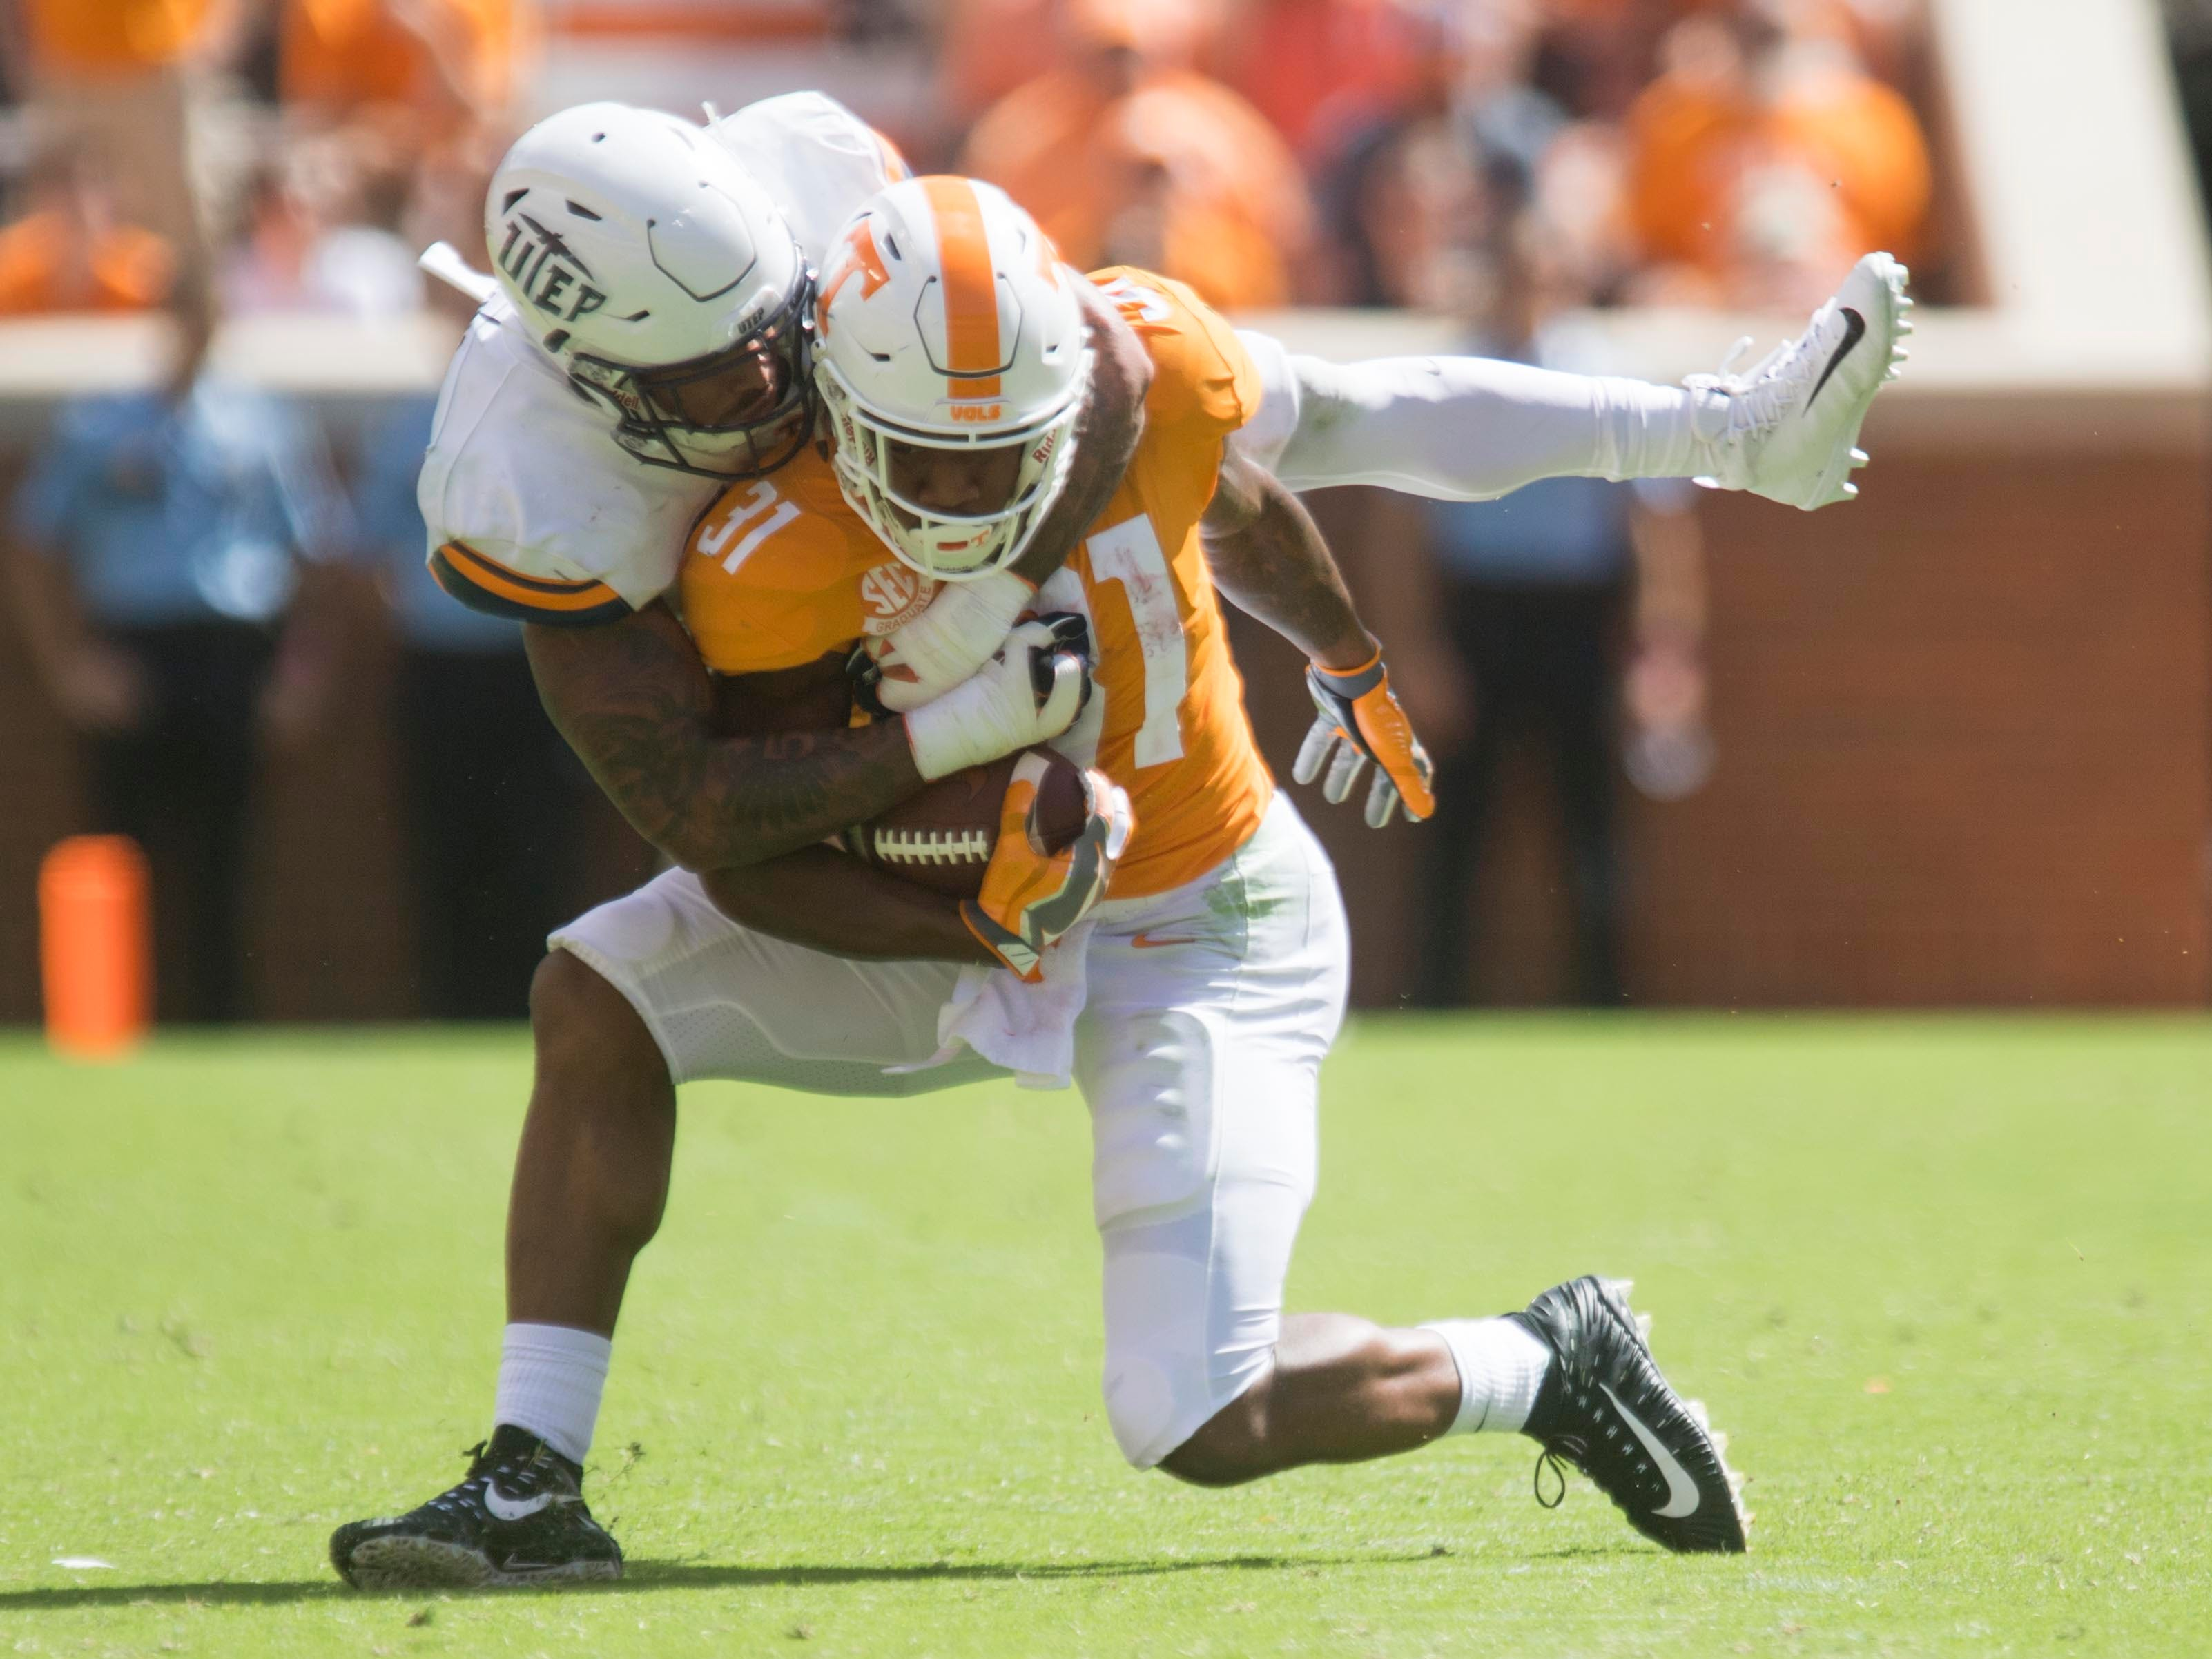 Tennessee running back Madre London (31) is tackled by UTEP linebacker Jayson VanHook (9) on Saturday, September 15, 2018.